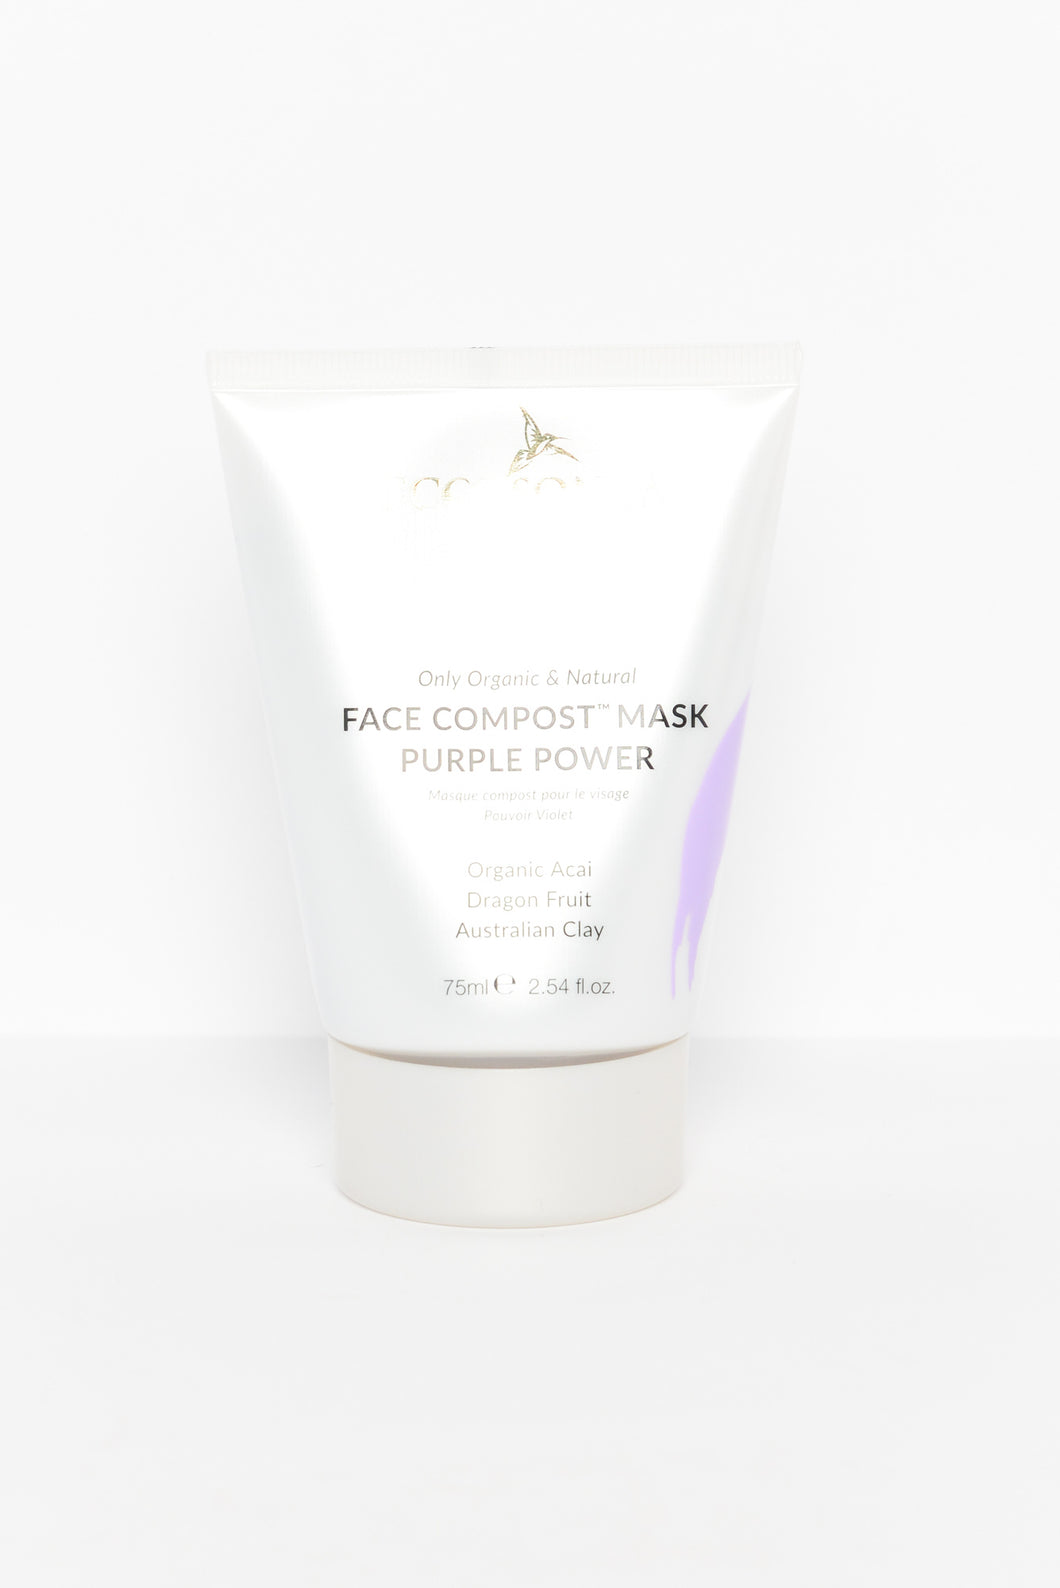 Eco Organic Face Compost Purple Power Mask